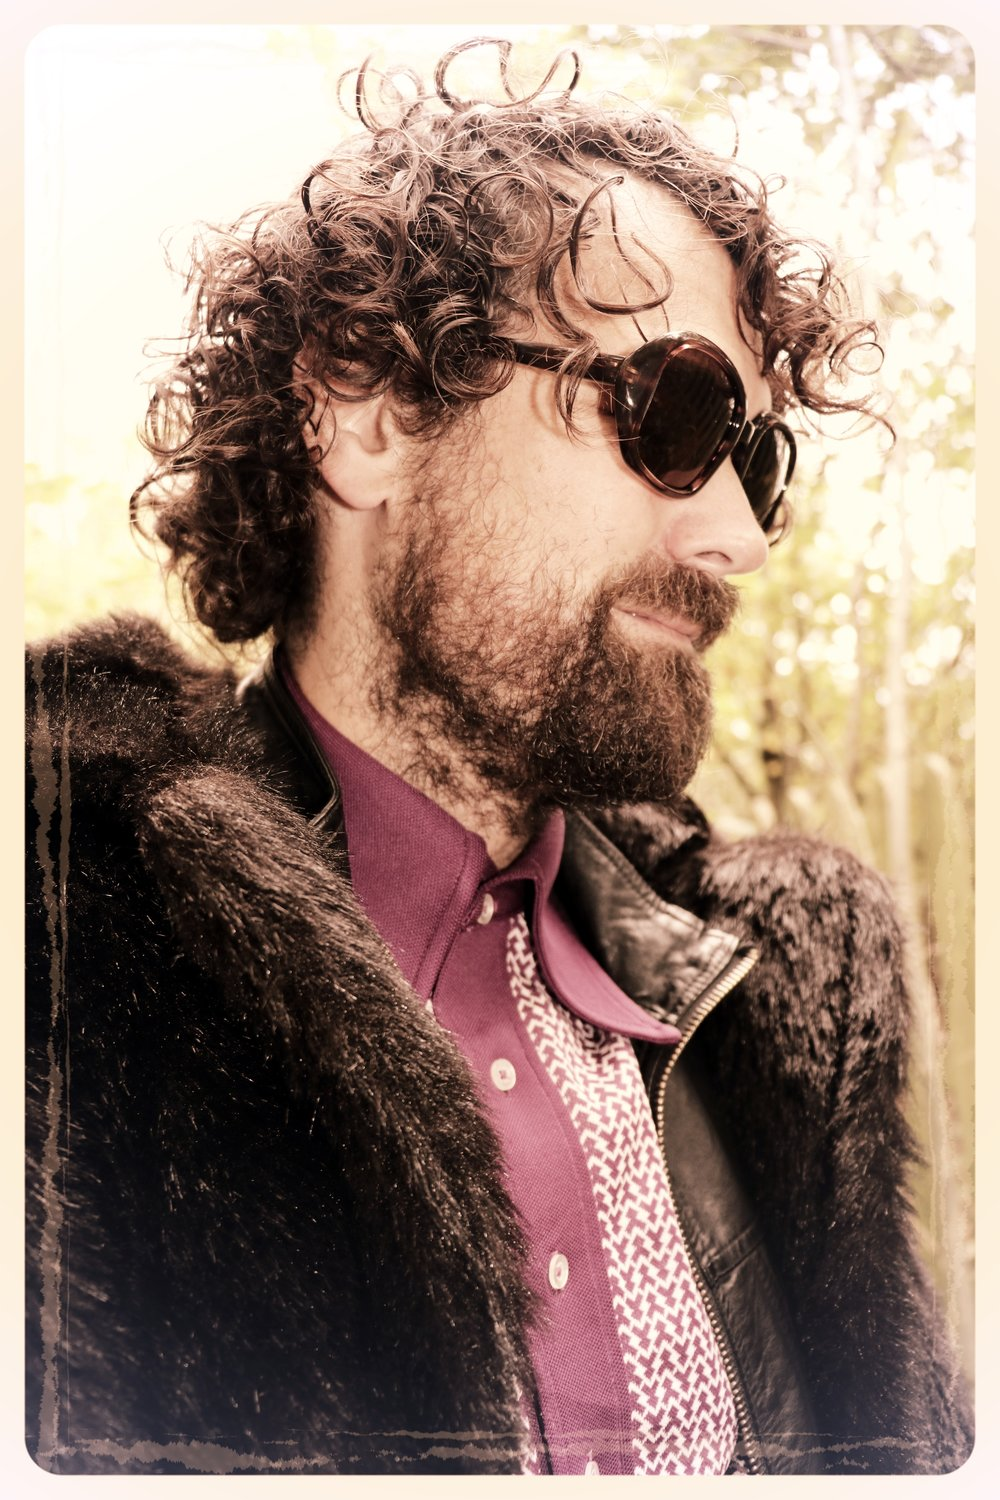 Peep Eyewear, Head shot, Vintage Sunglasses, ronnie worn with fur coat, Autumn Winter Collection